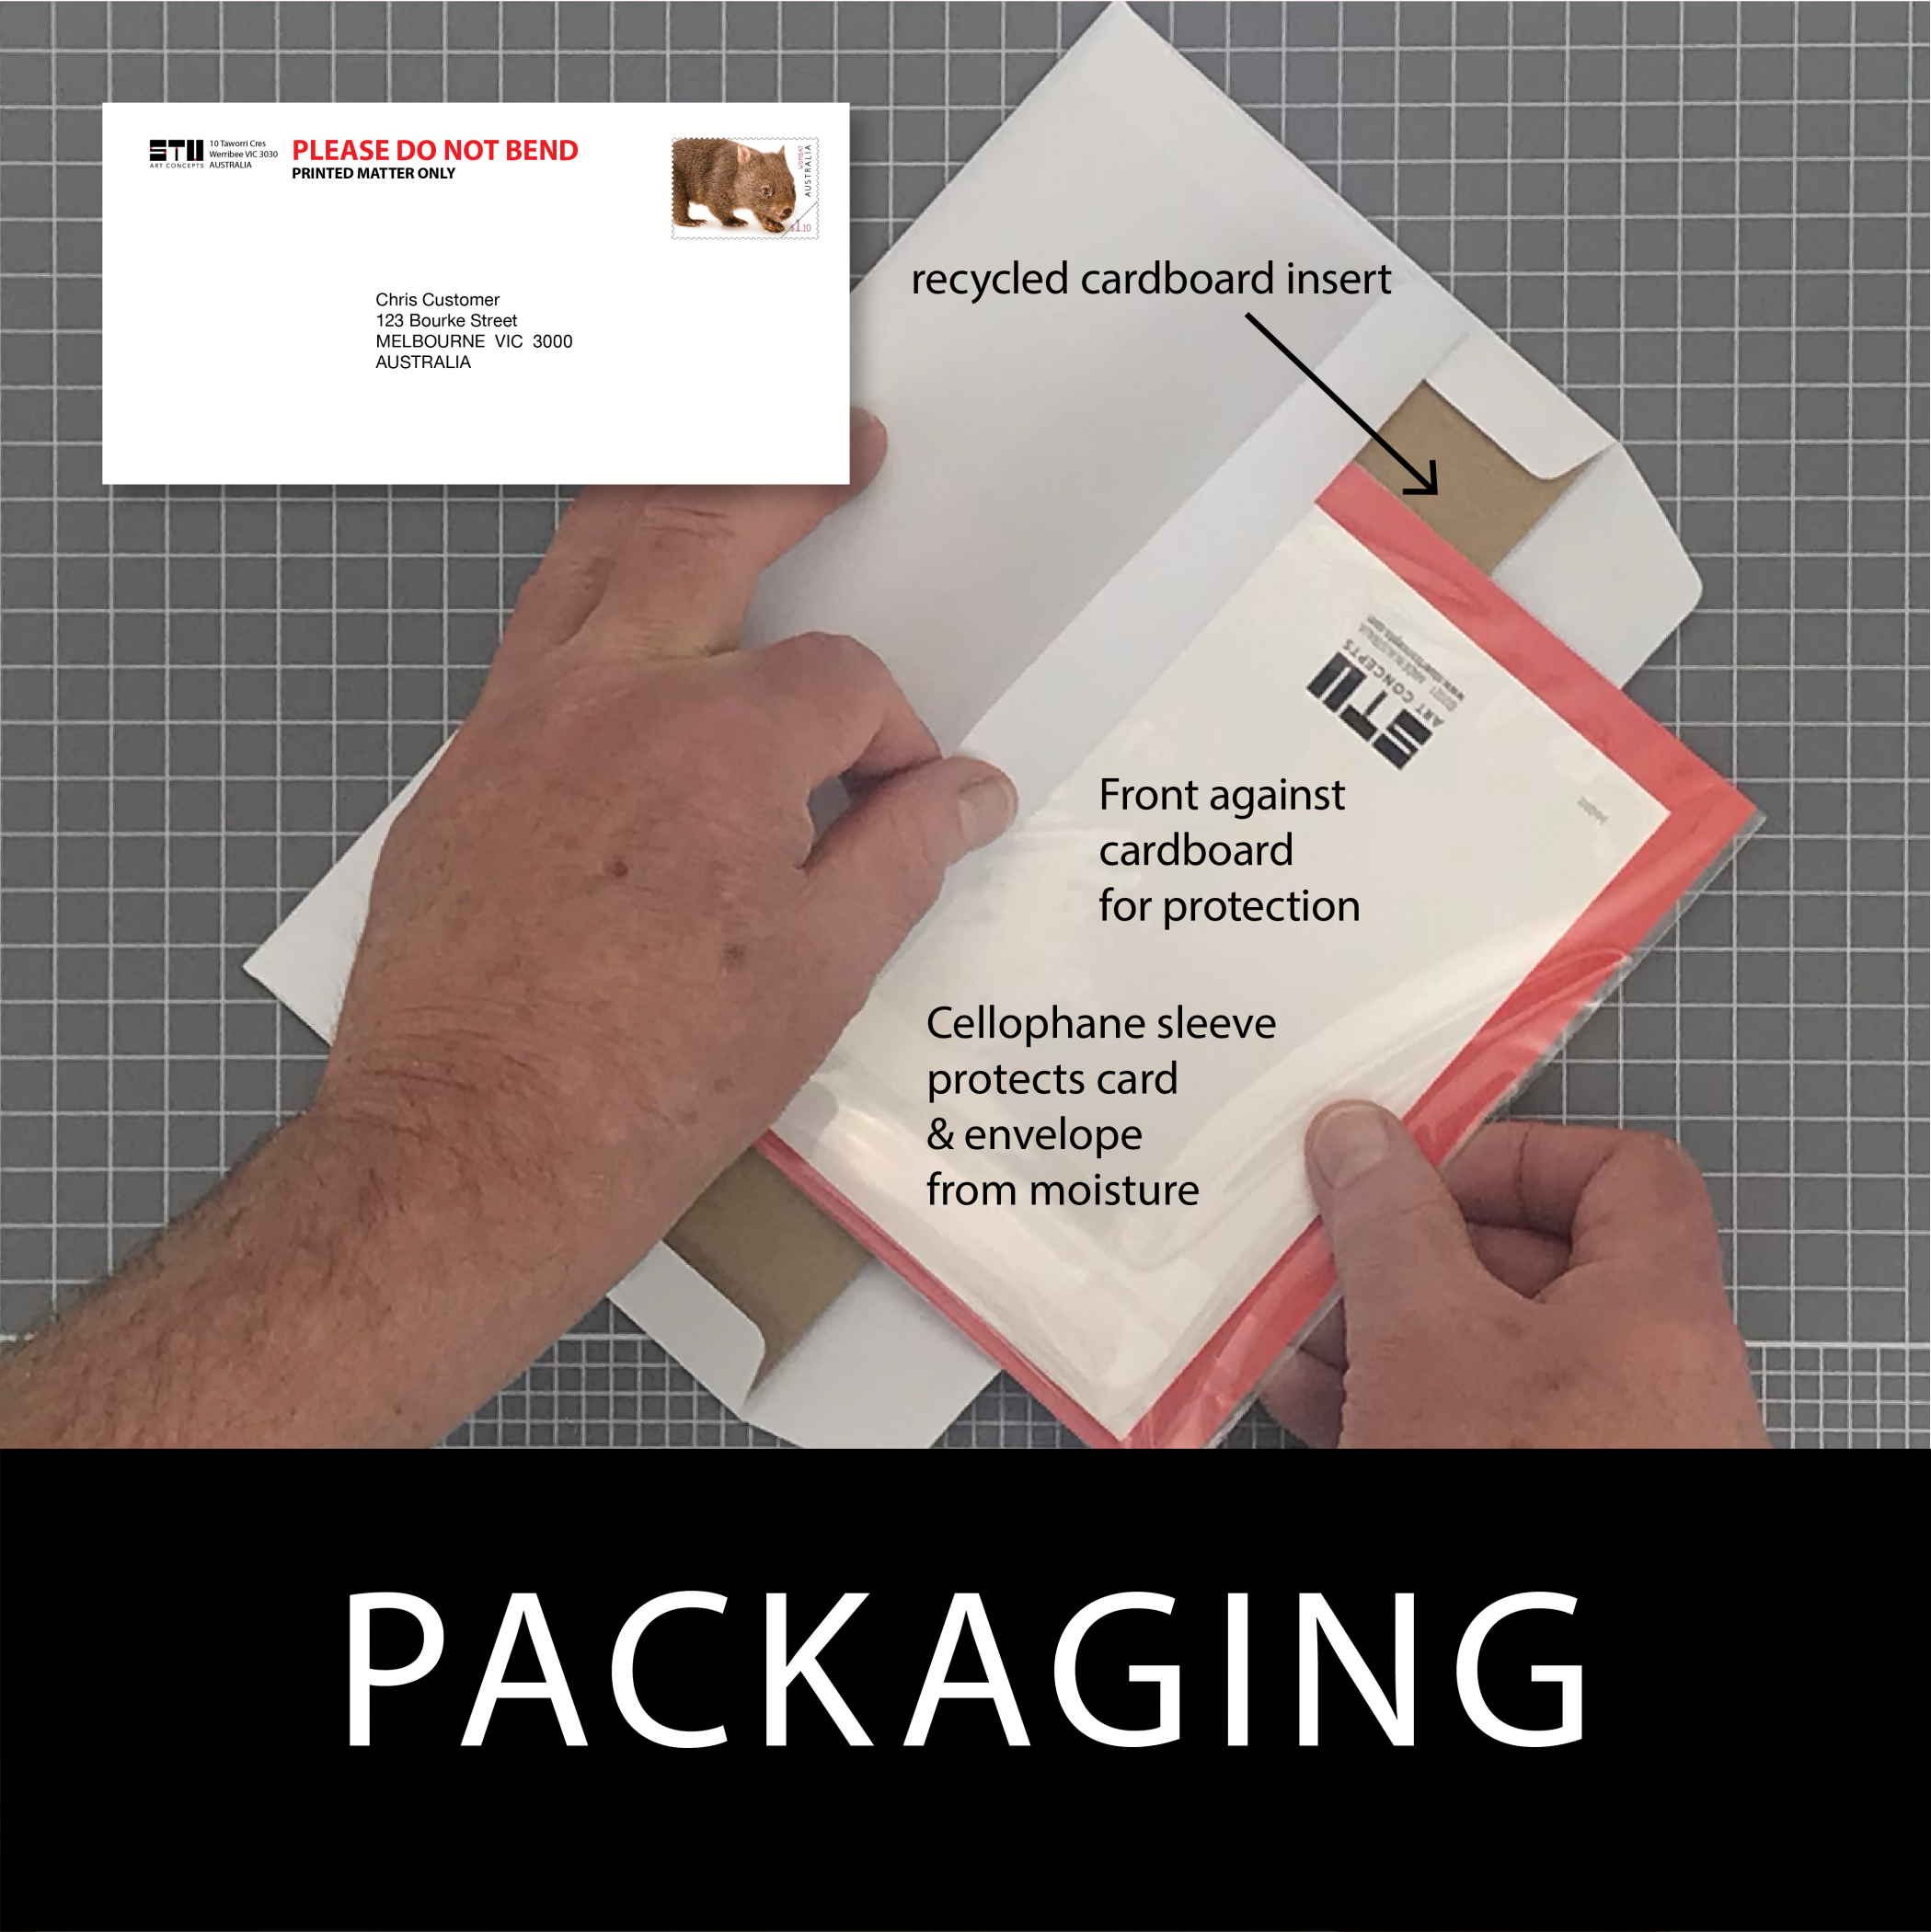 How I package your card